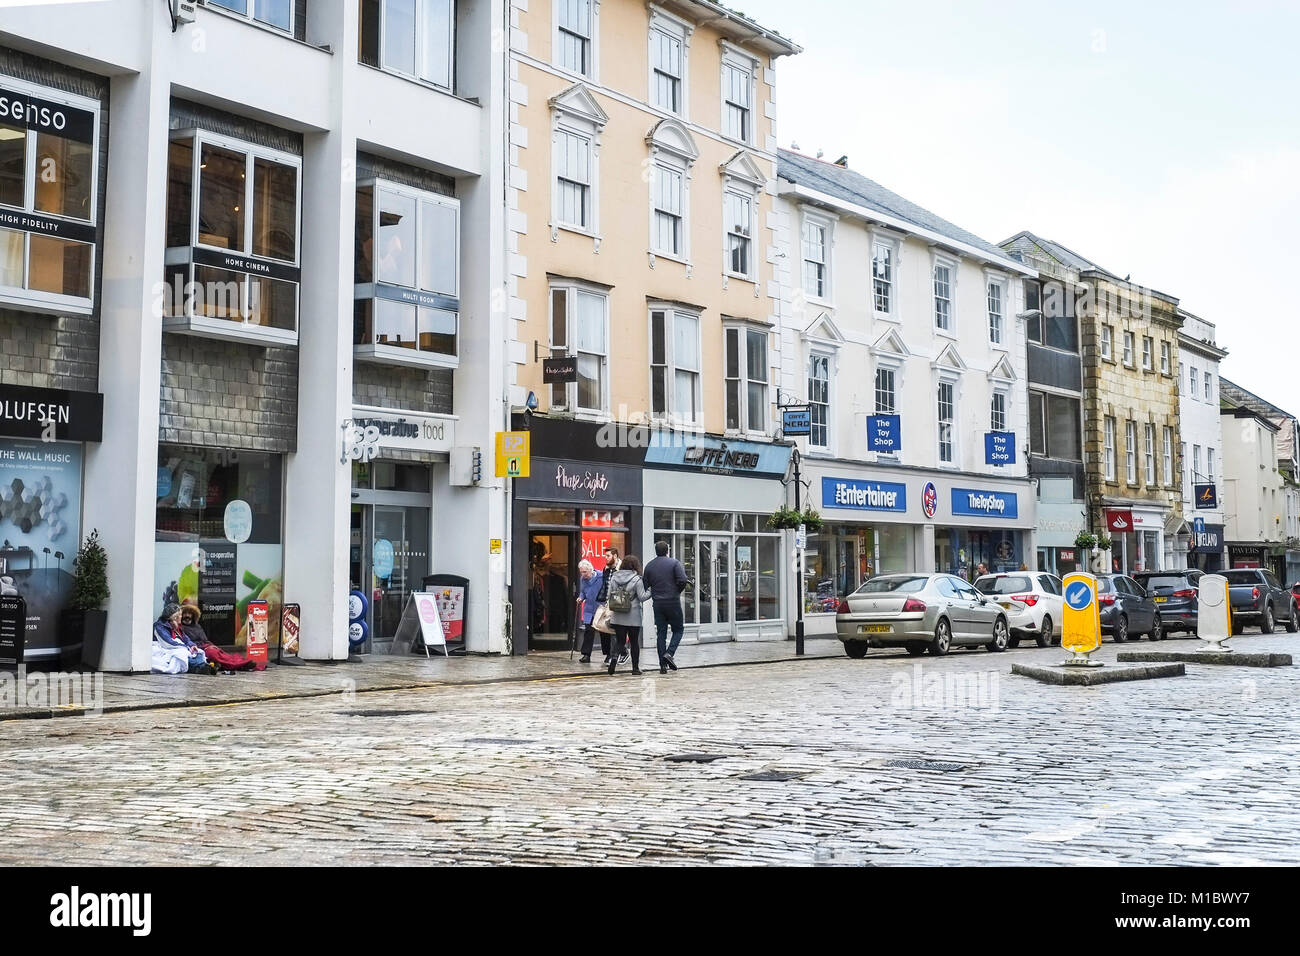 Boscawen Street in Truro City Centre Cornwall. - Stock Image